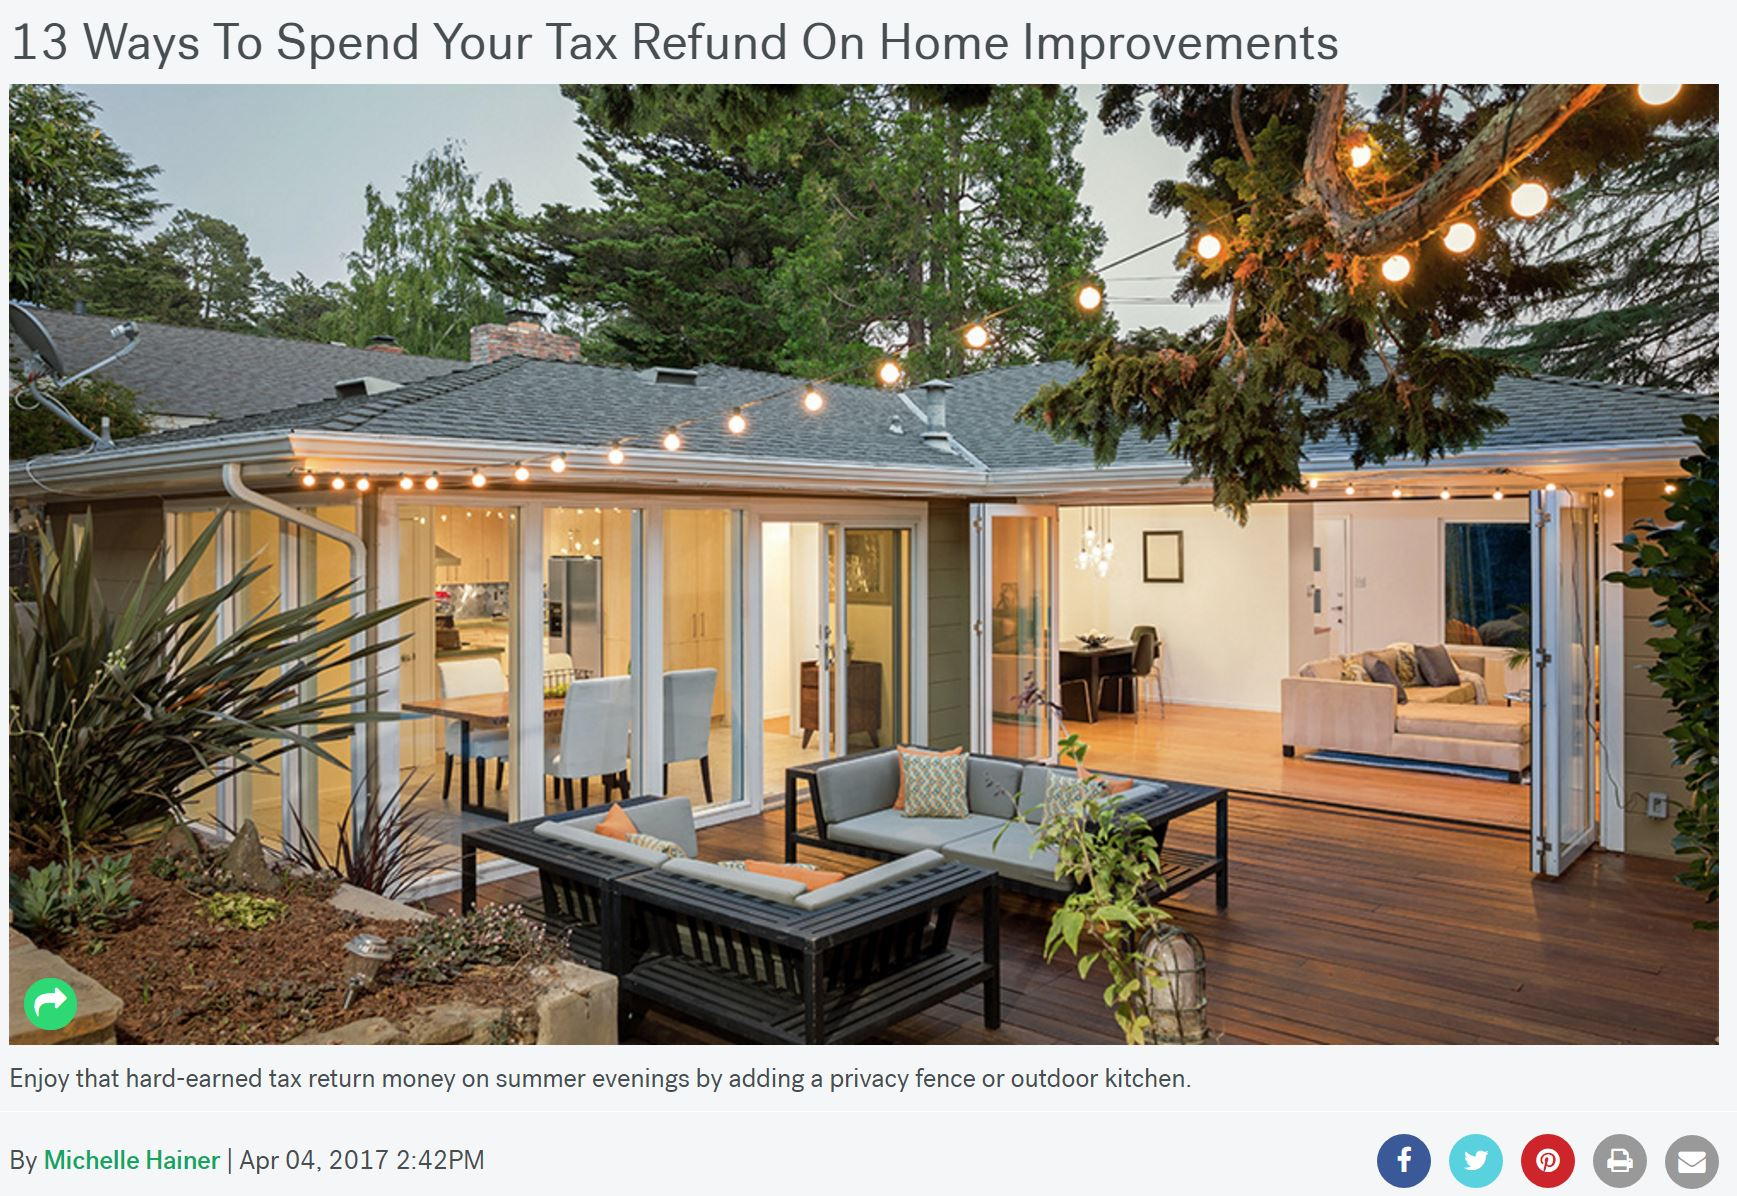 Trulia cover for MRH.jpg